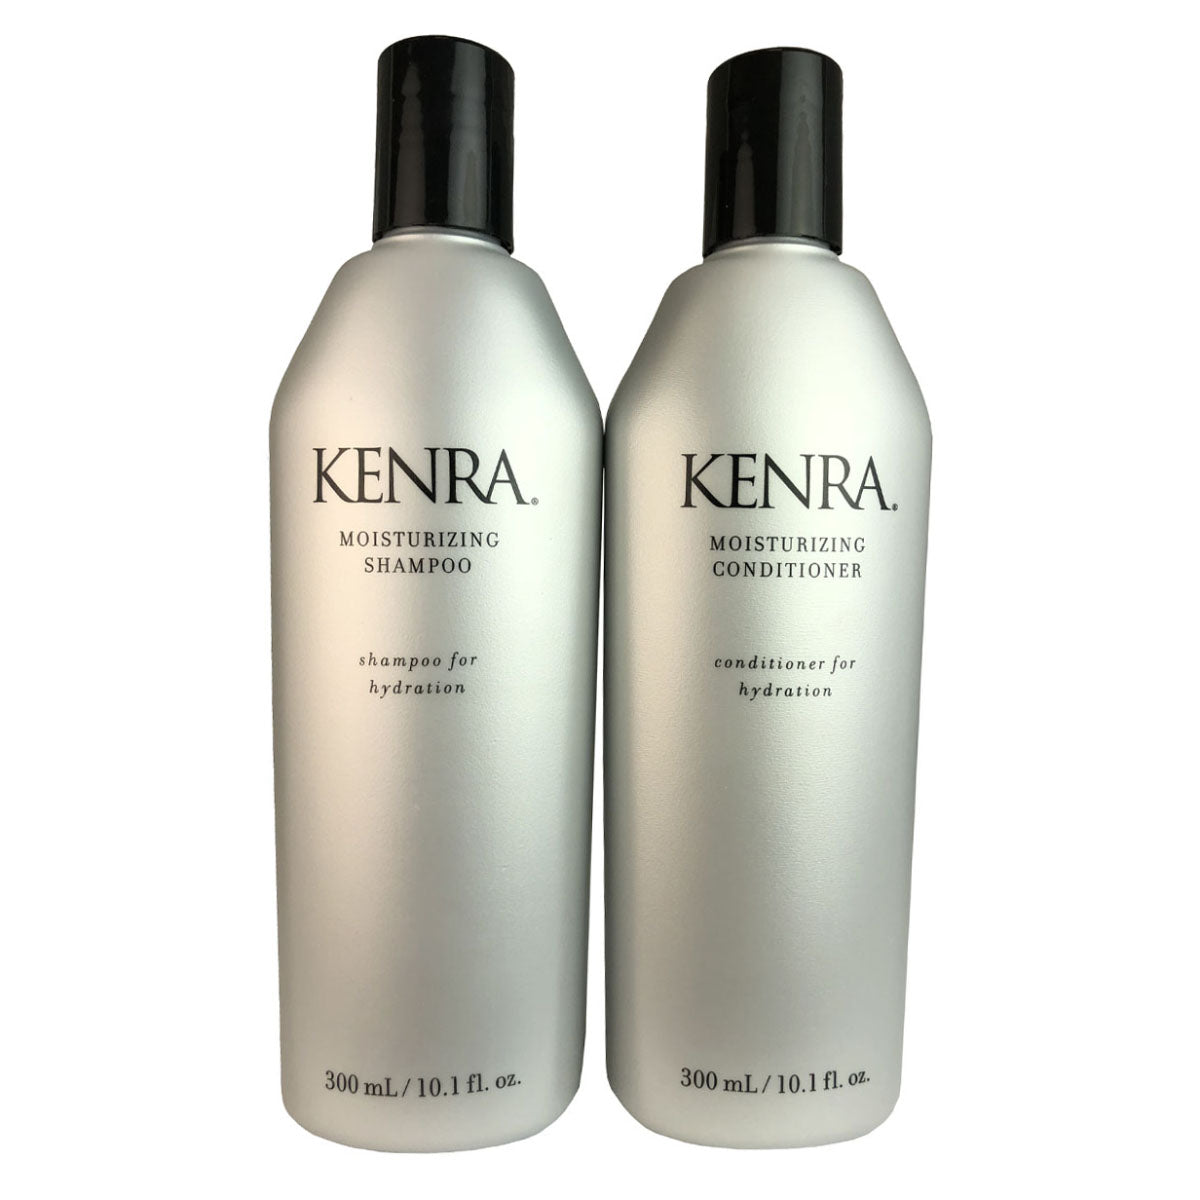 Kenra Moisturizing Hair Shampoo and Conditioner Duo 10.1 oz Each